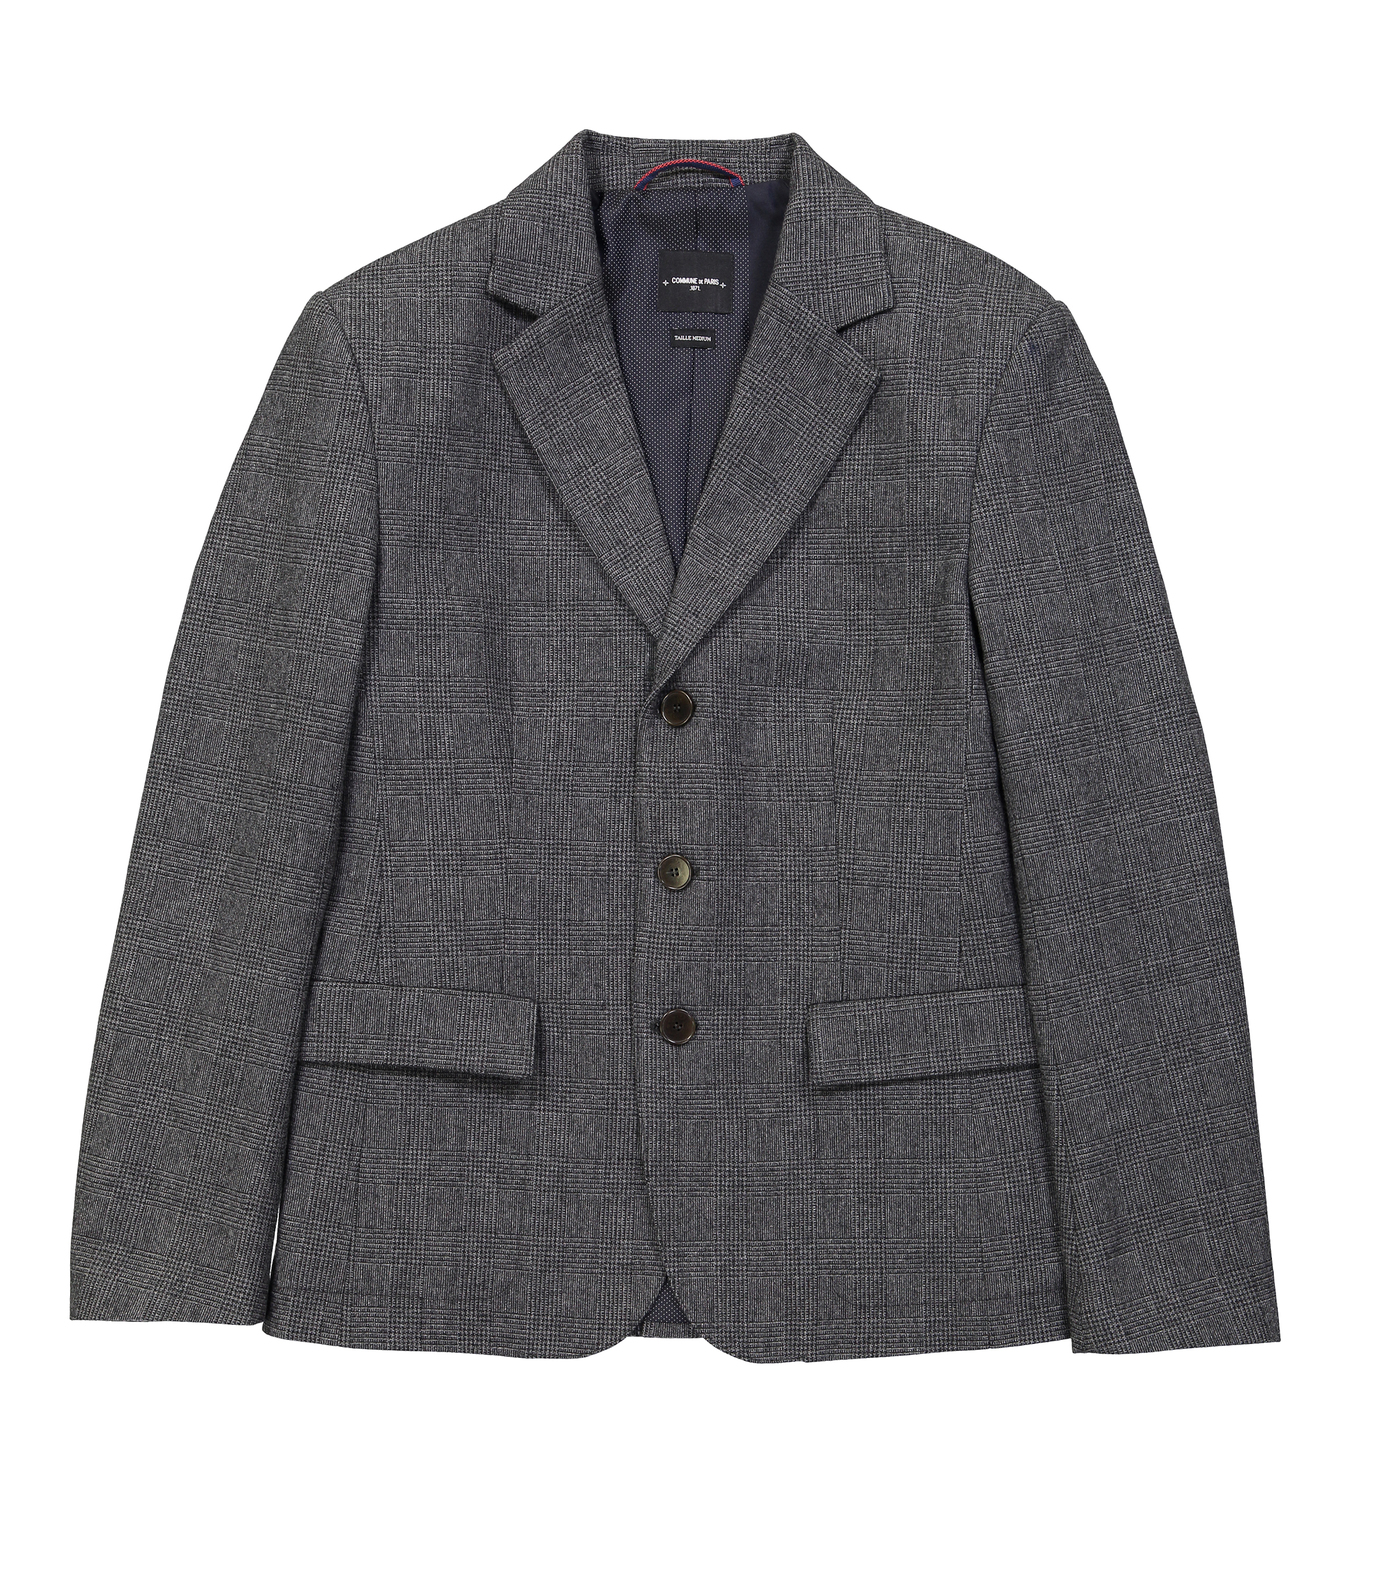 SUIT JACKET PROTOT  - Grey